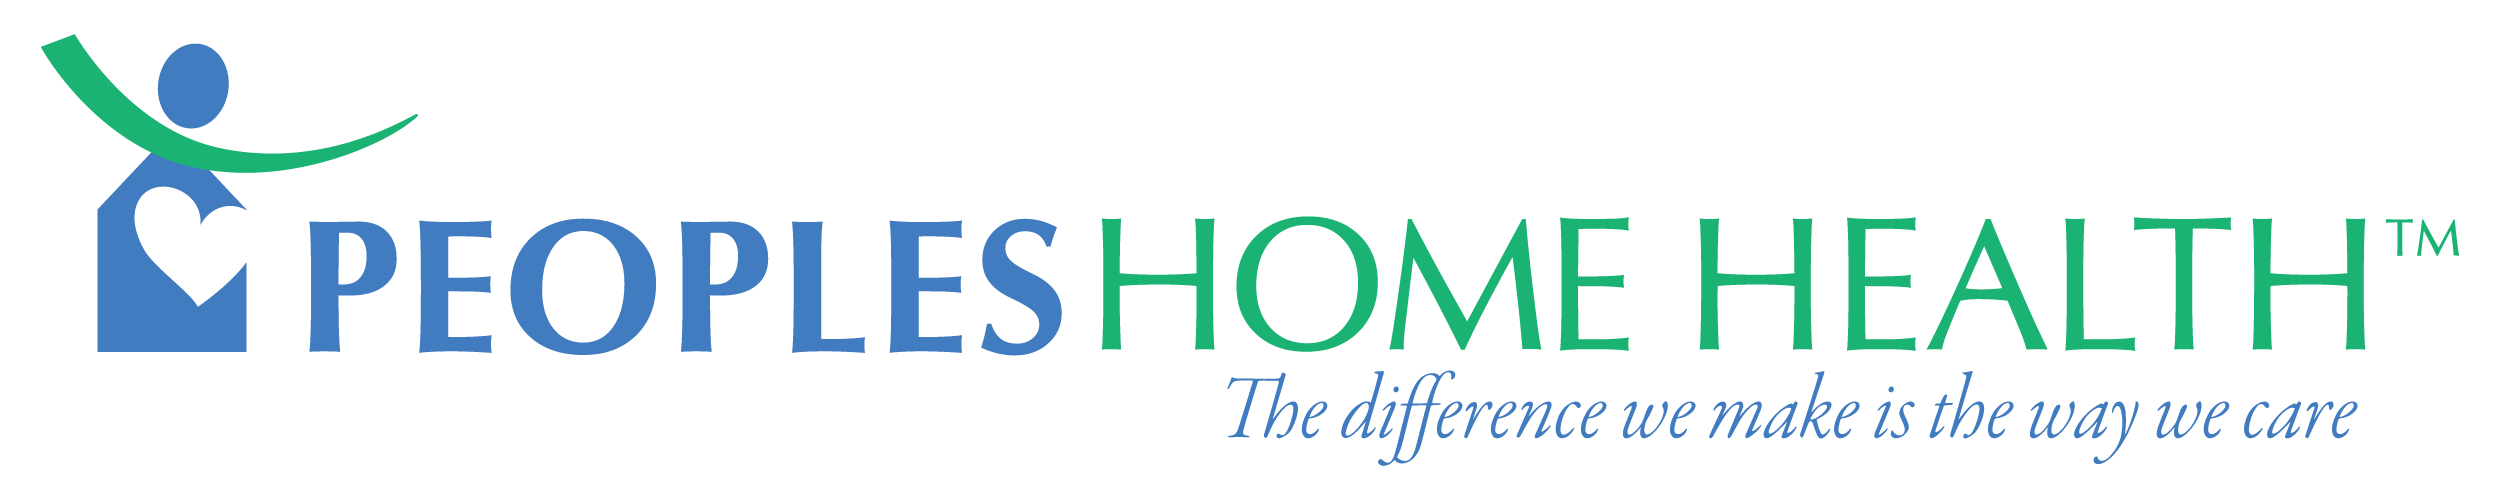 Peoples Home Health Logo